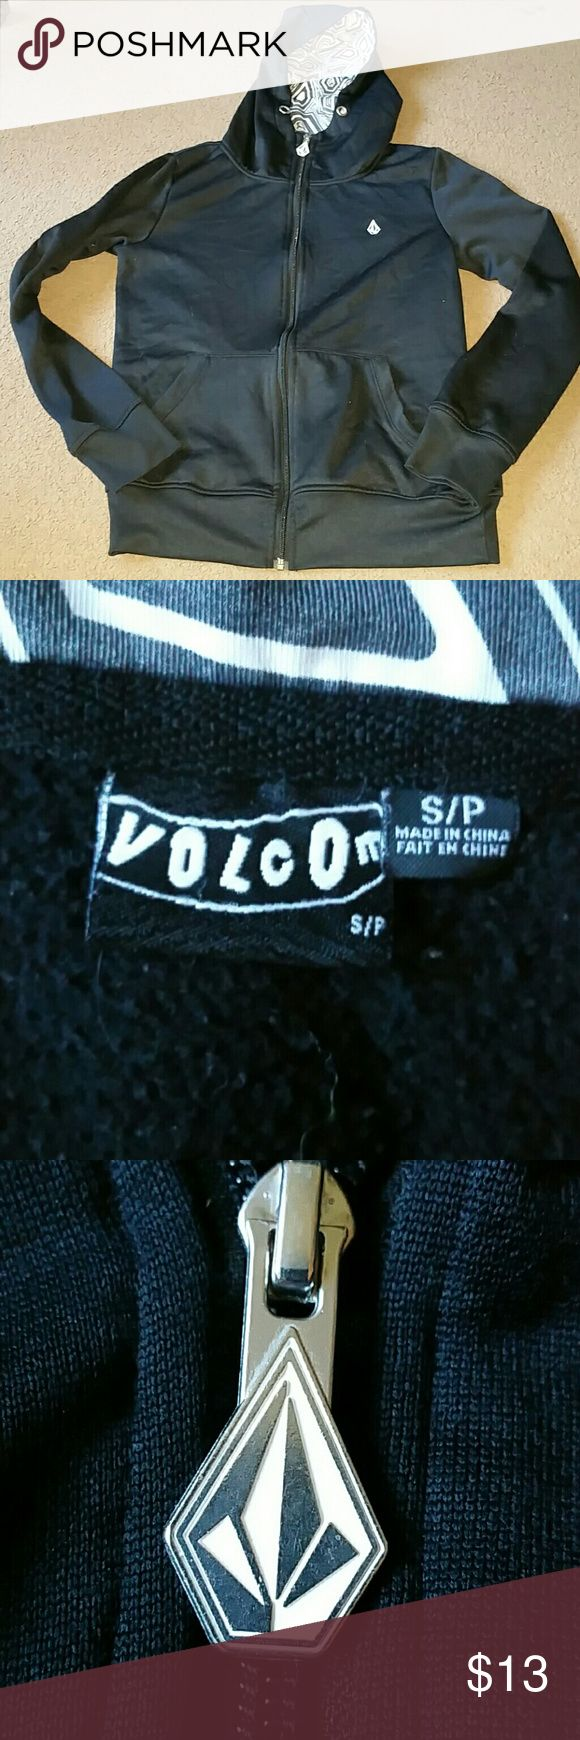 Volcom women's size small black zip up jacket Volcom womens size small black zip up jacet. Long sleeves, inside of the hood is black and white pattern. Has been worn but lots of life left. Volcom Tops Sweatshirts & Hoodies